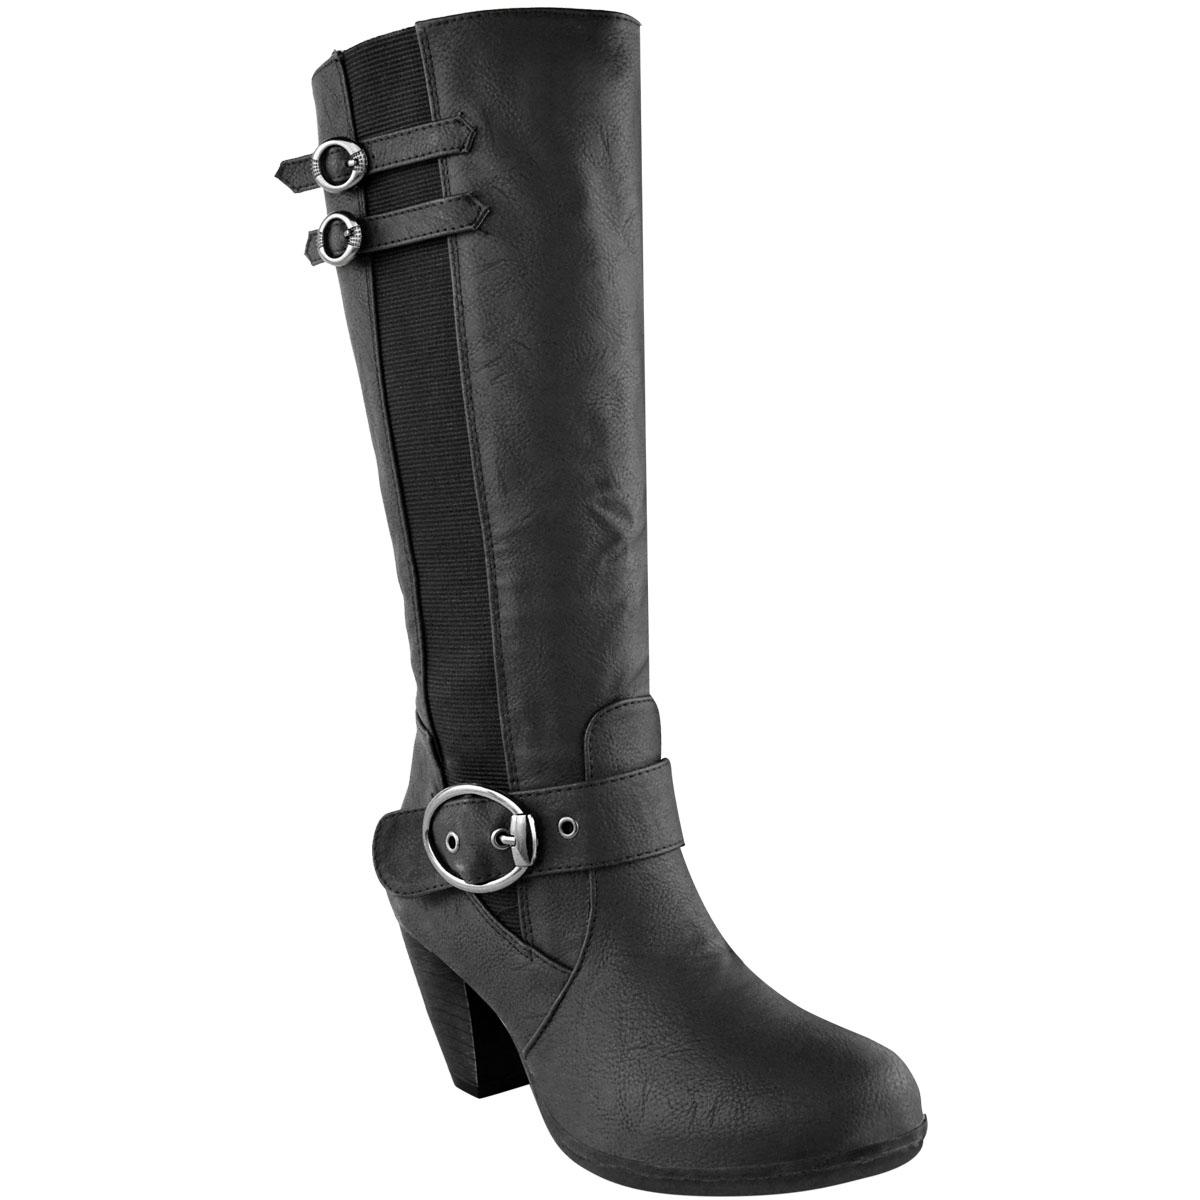 Womens-Ladies-Knee-Calf-High-Boots-Block-Heels-Stretchy-Thigh-Shoes-Grip-Size thumbnail 12